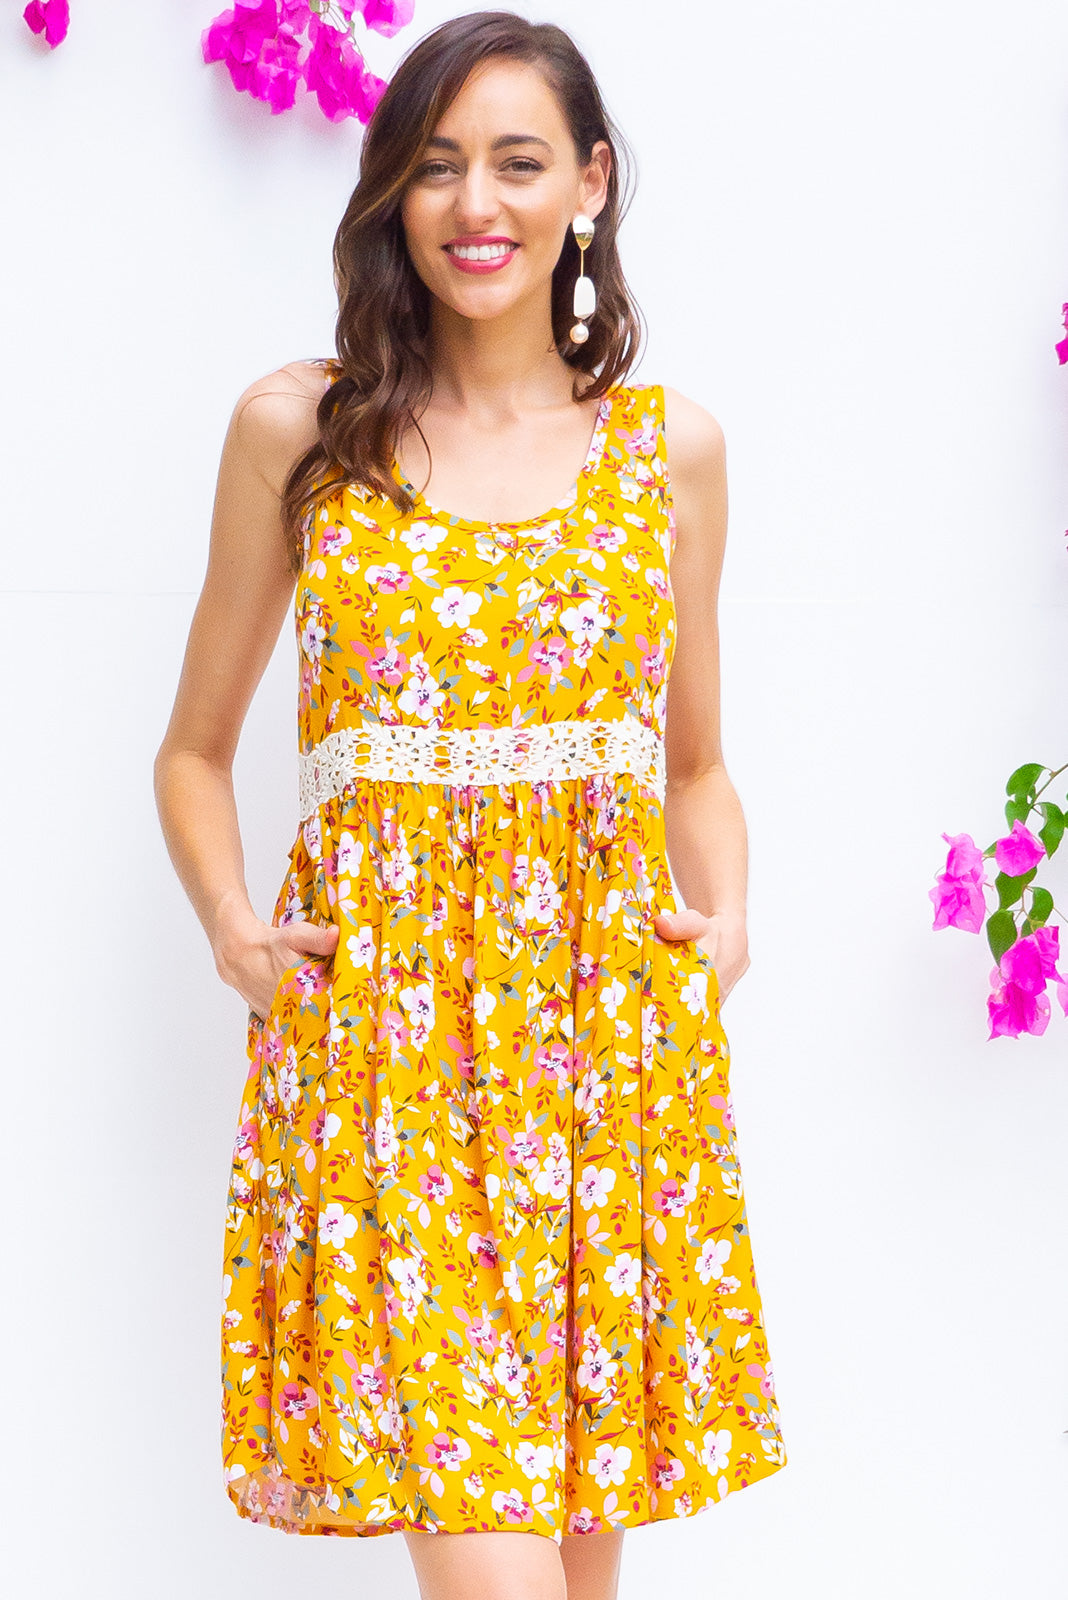 Sandi Starburst Gold Dress is a soft cut sleeveless dress with a adjustable button tab with feature cotton lace in a bold gold floral print on a crepe textured woven rayon